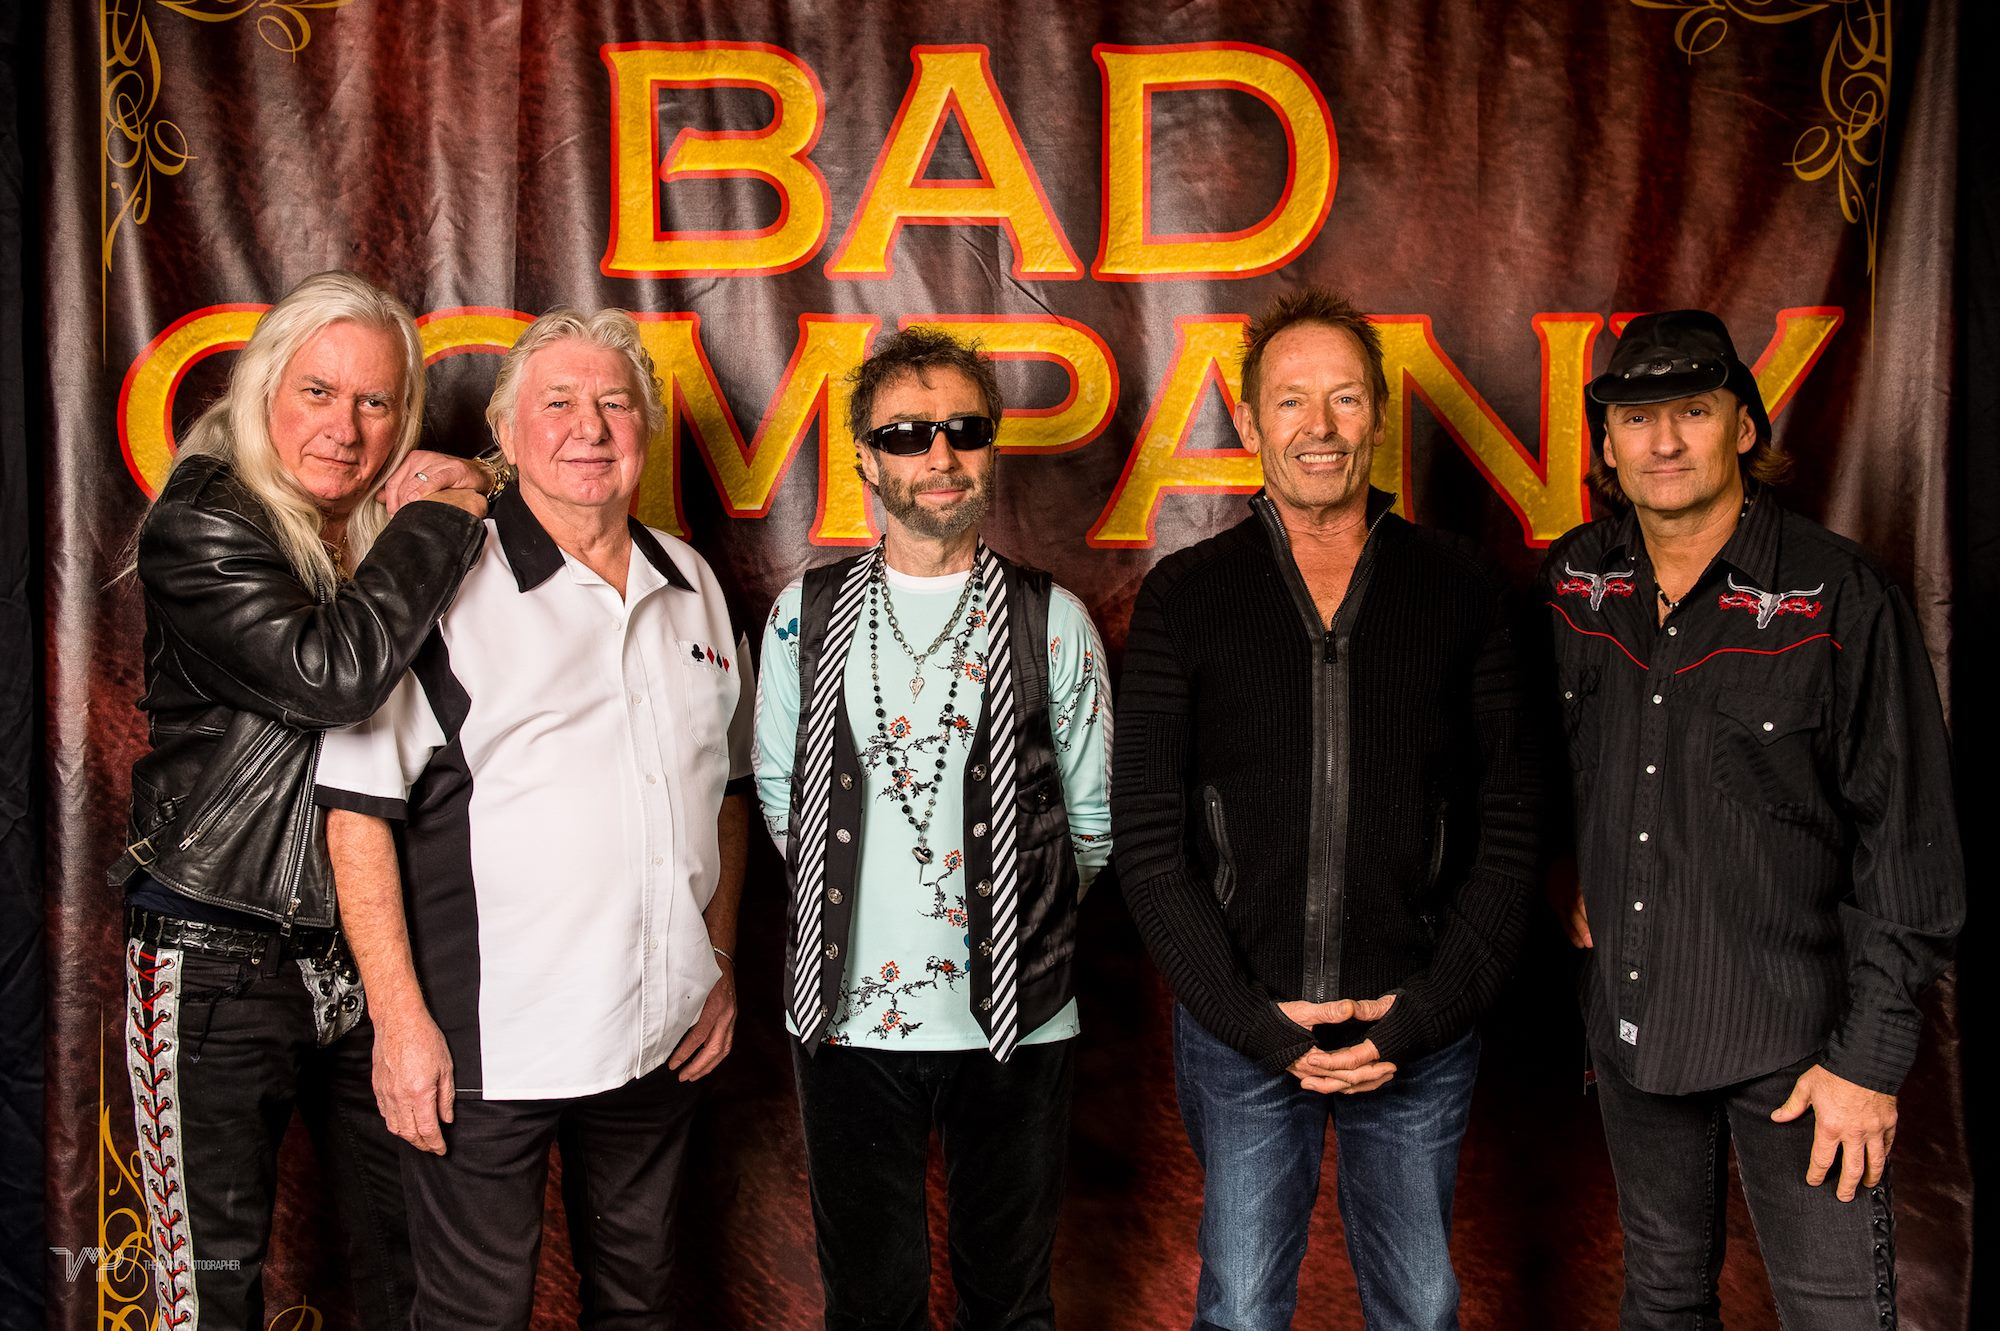 Bad Company Fall 2016 lineup: Howard Leese, Mick Ralphs, Paul Rodgers, Simon Kirke and Todd Ronning. (Photo via their Facebook page)